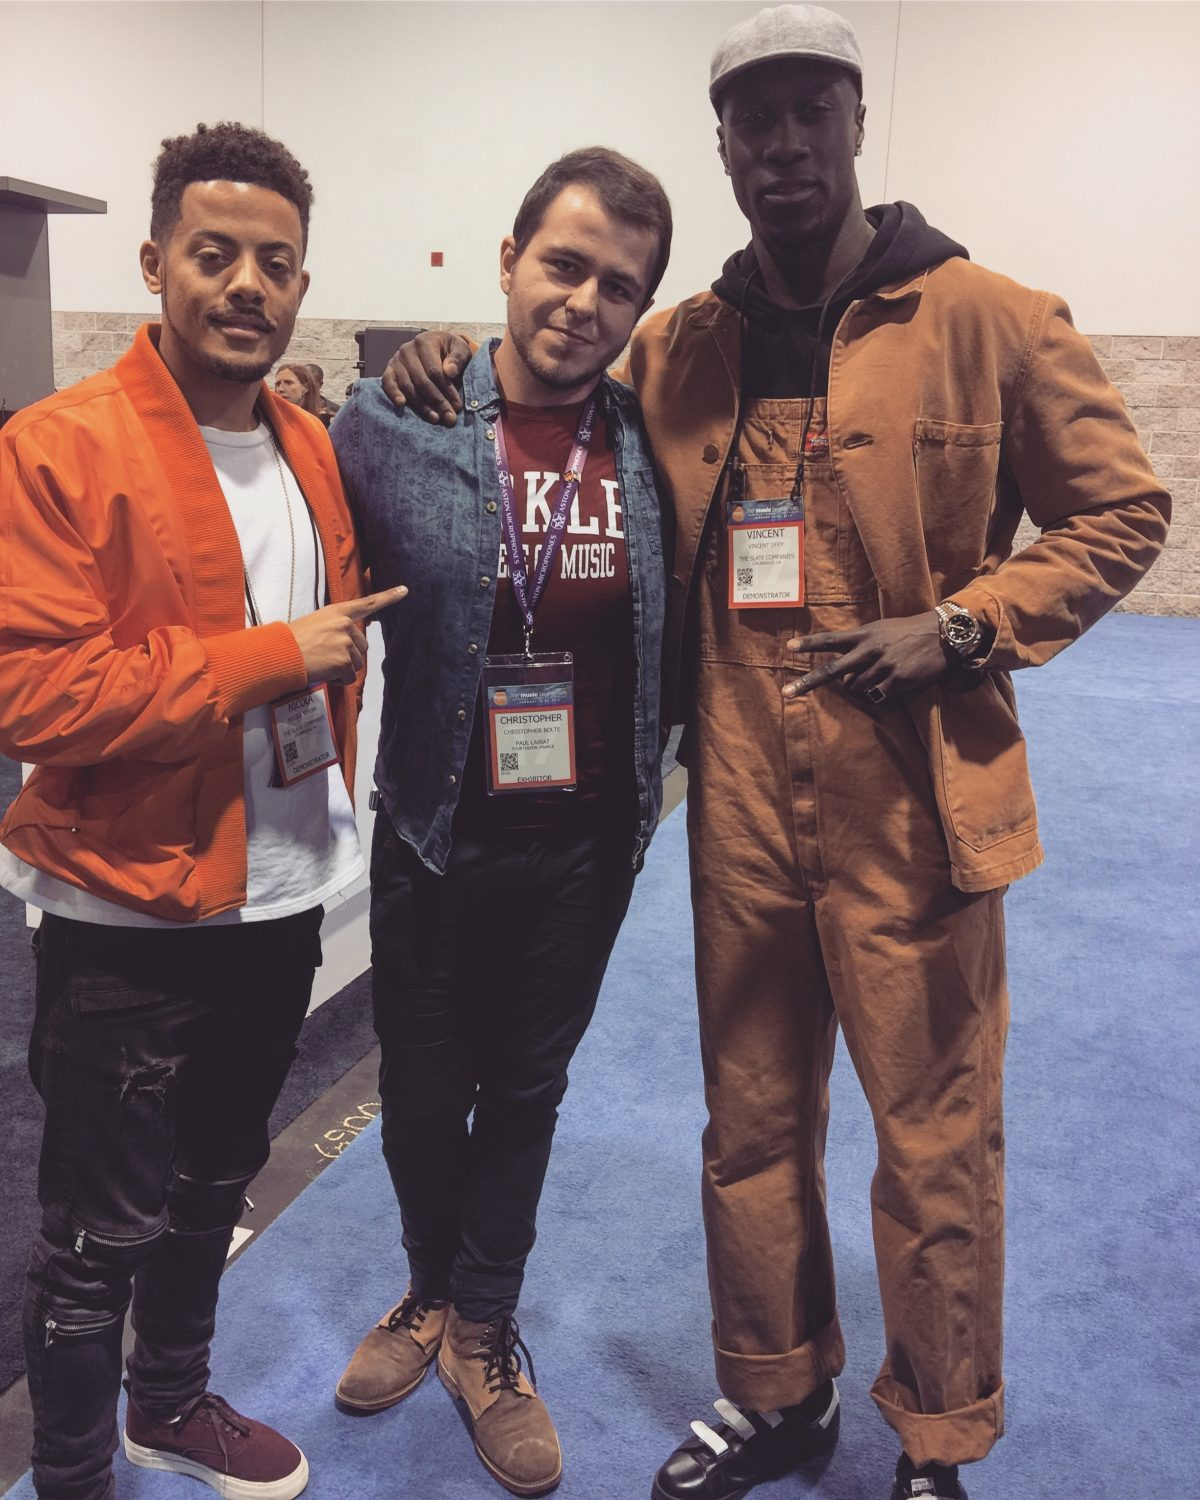 With Nico & Vinz